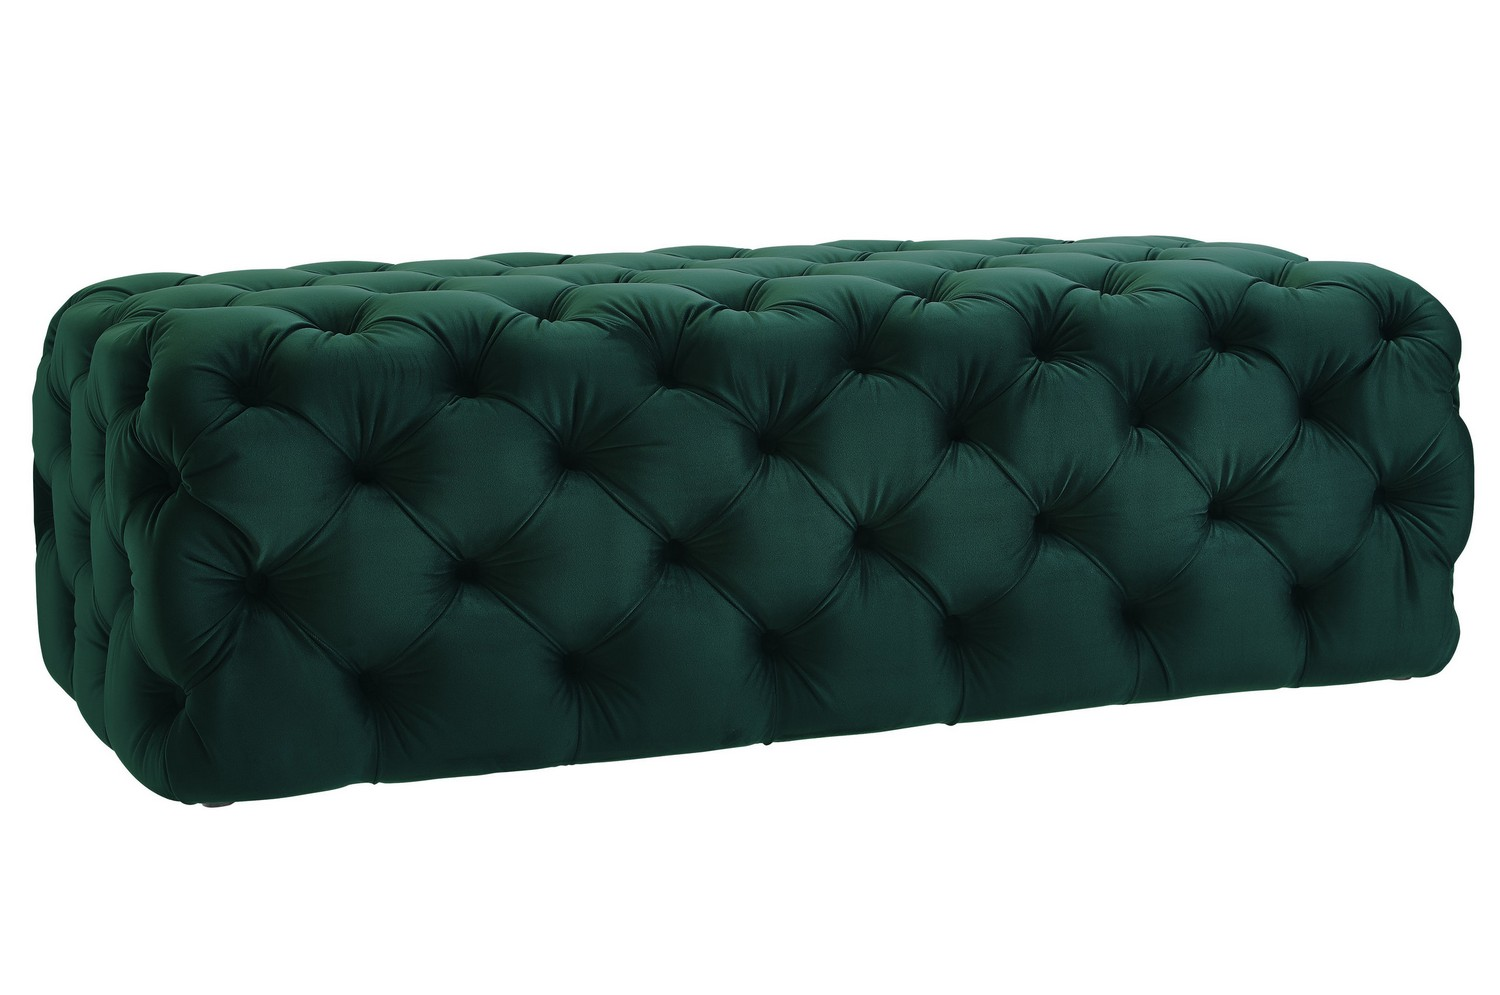 Tov Furniture Kaylee Jumbo Green Velvet Ottoman O66 At